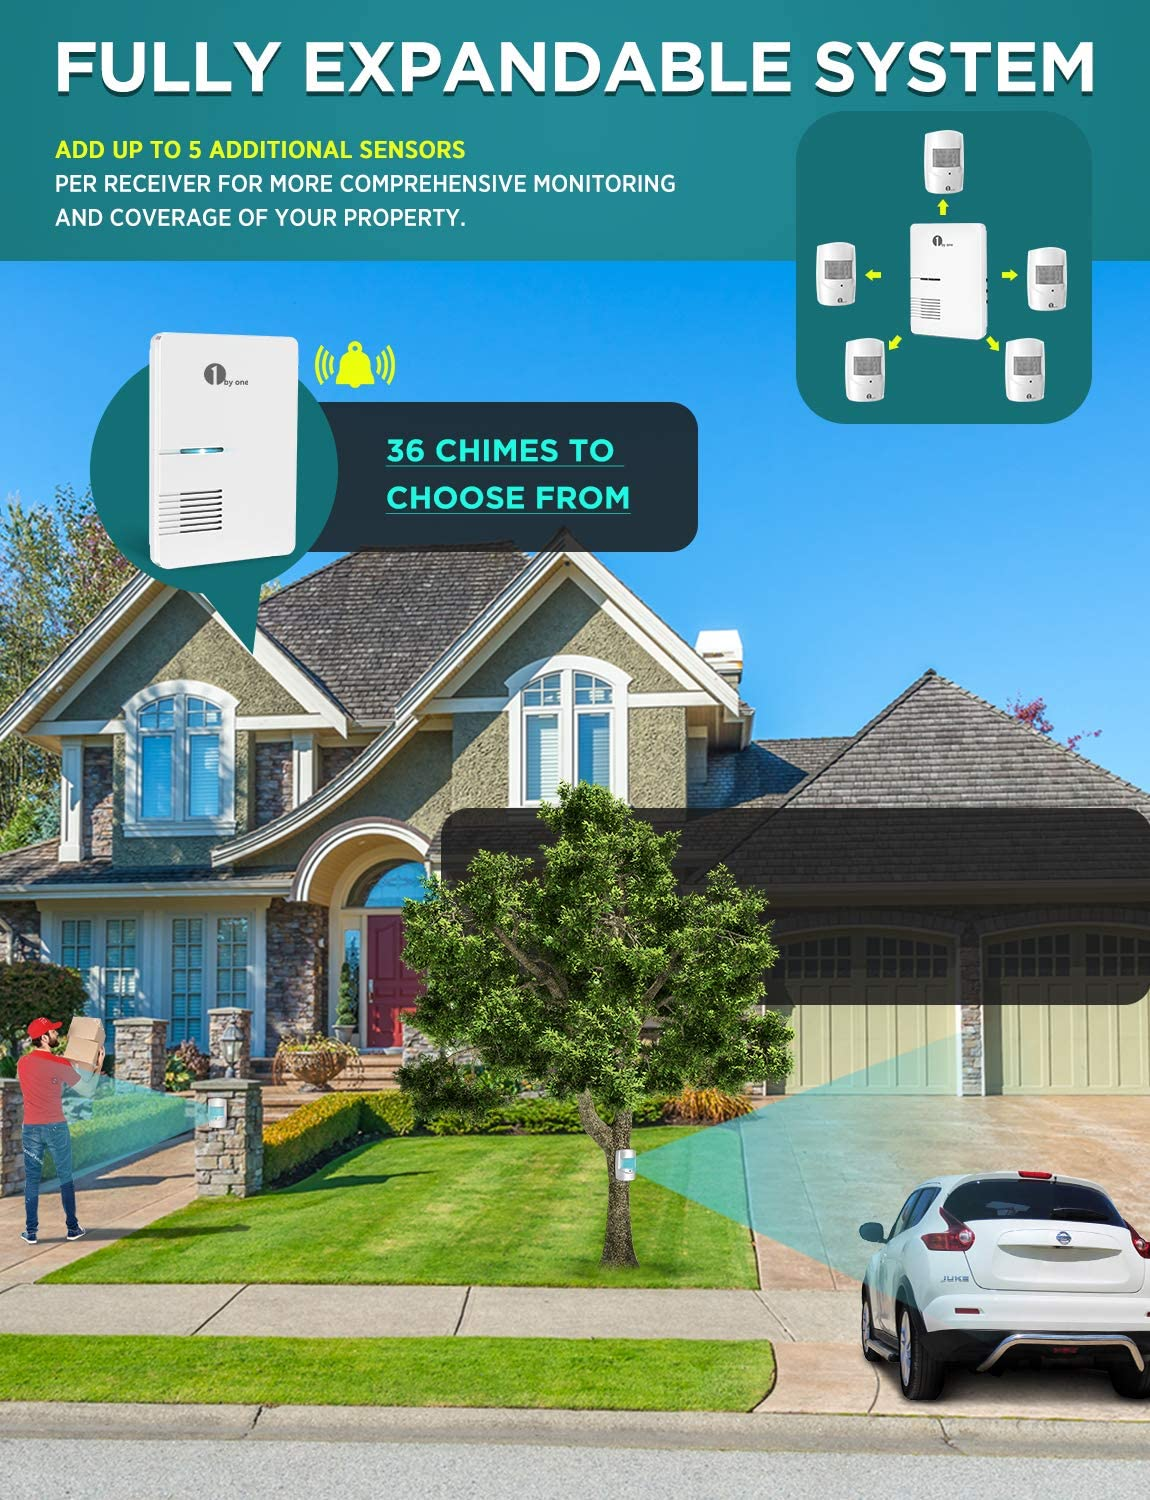 36 Melodies 1byone Motion Sensor 1000ft Operating Range Protect Indoor//Outdoor Property Driveway Alarm Home Security Alert System with 1 Plug-in Receiver and 2 Weatherproof PIR Motion Detector